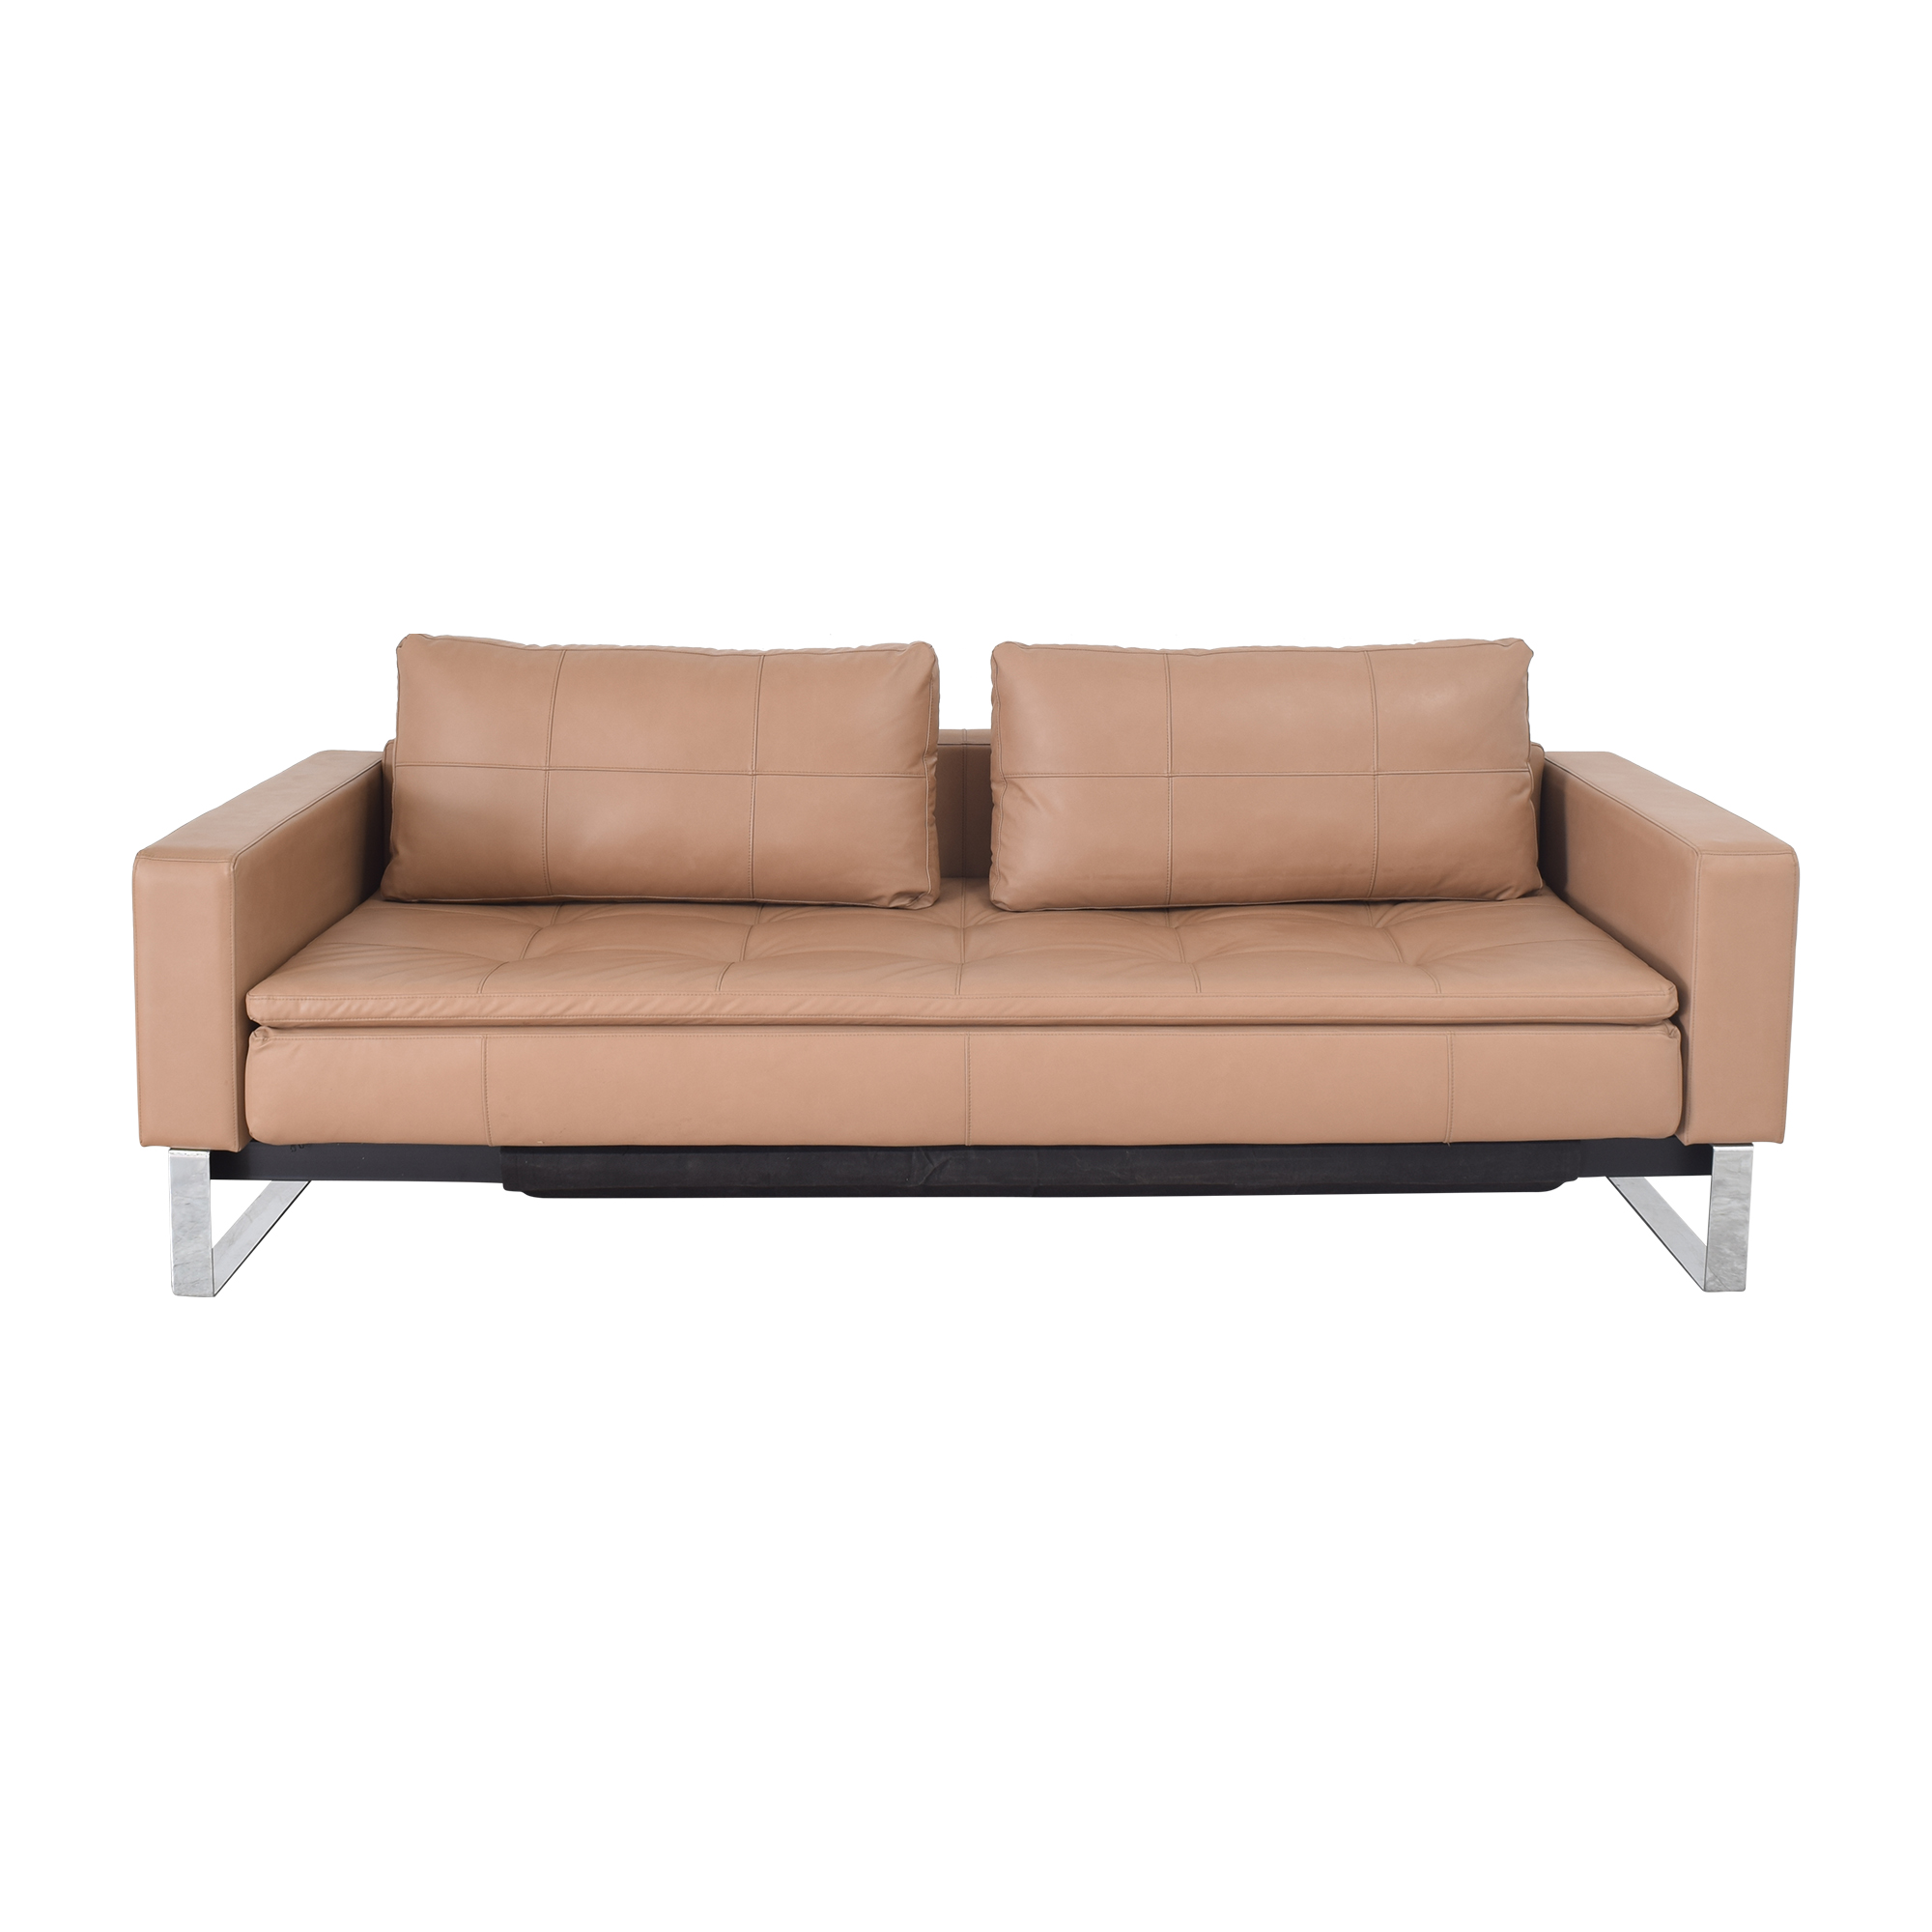 Innovation Living Innovation Living Tufted Sleeper Sofa dimensions